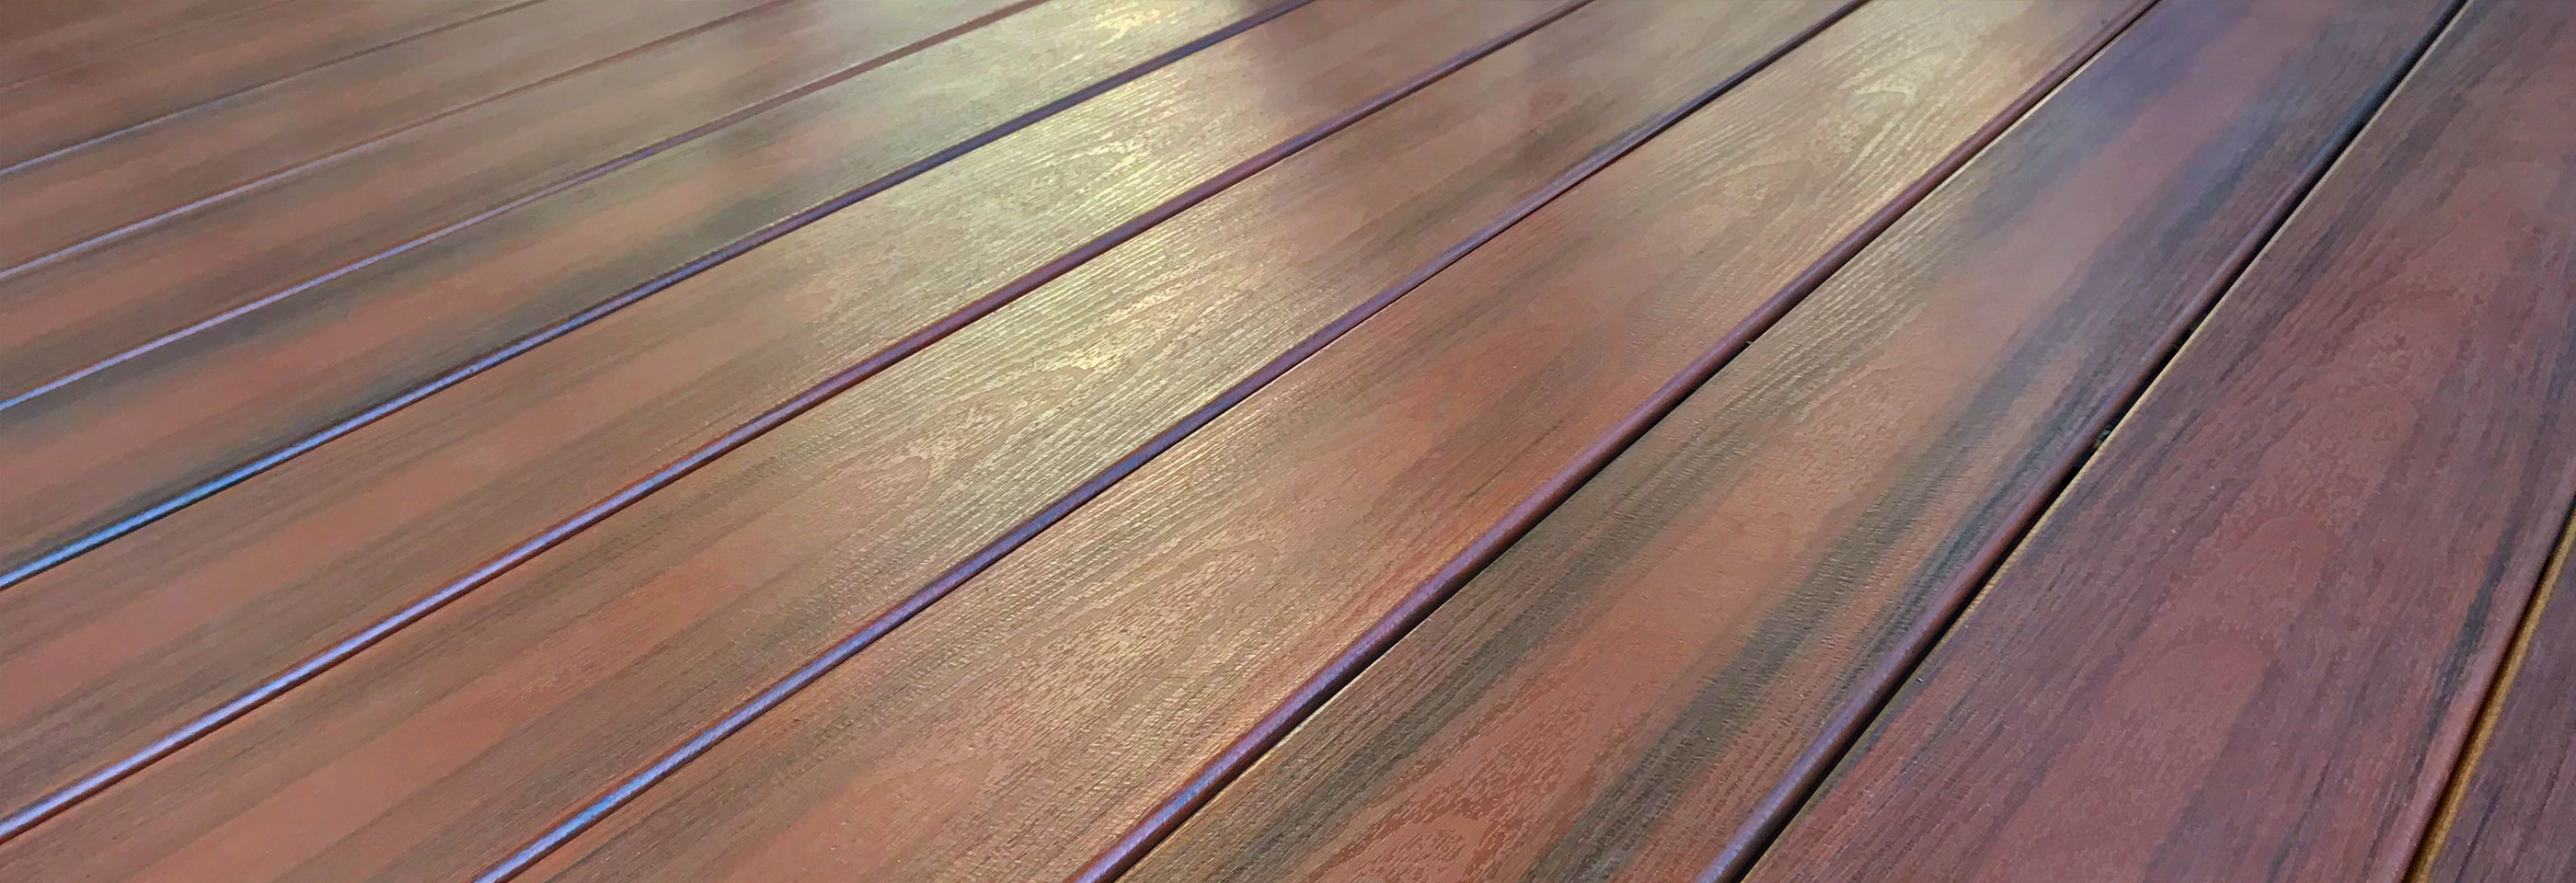 Synthetic Deck Boards Armadillo Deck Composite Decking Designed For Beauty Made For